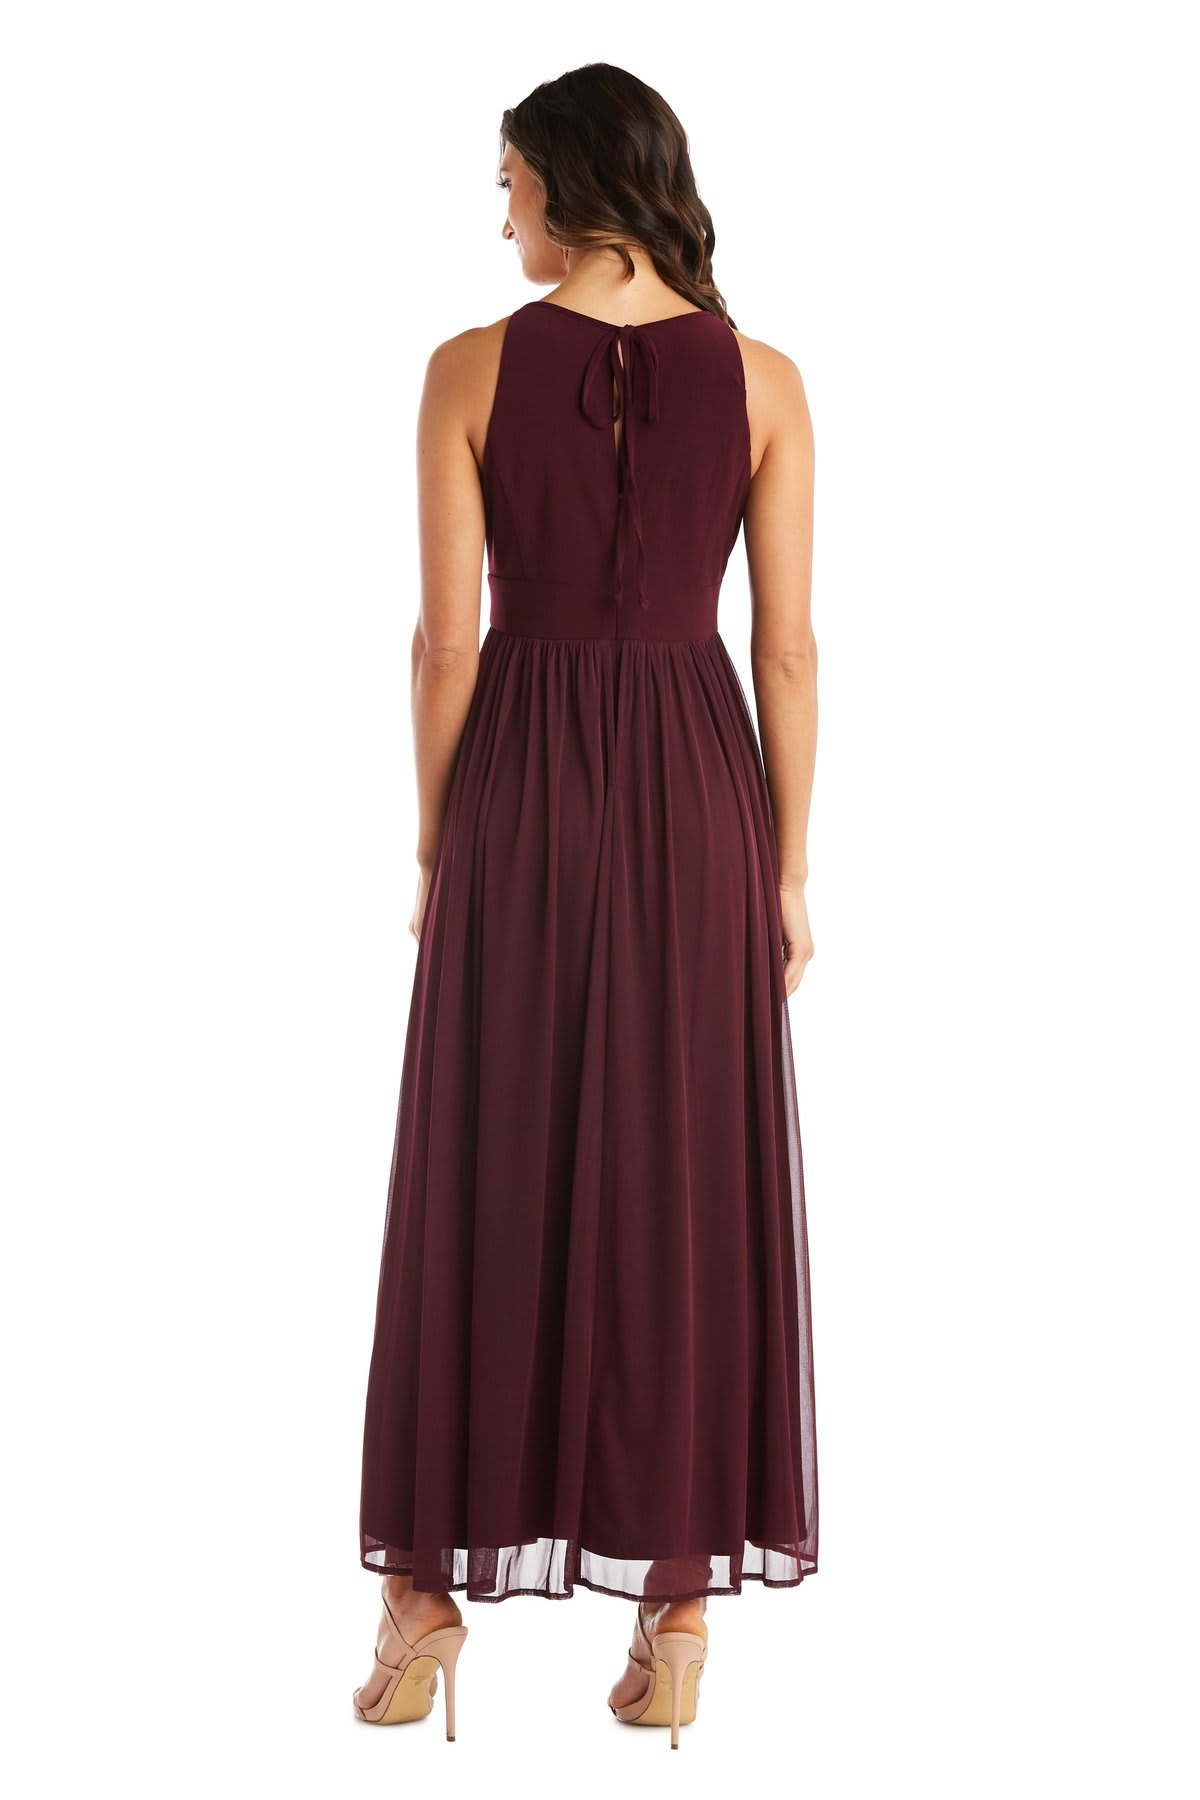 Maxi Dress with Keyhole Cutout, Halterneck and Flowing Skirt - Burgundy - Back